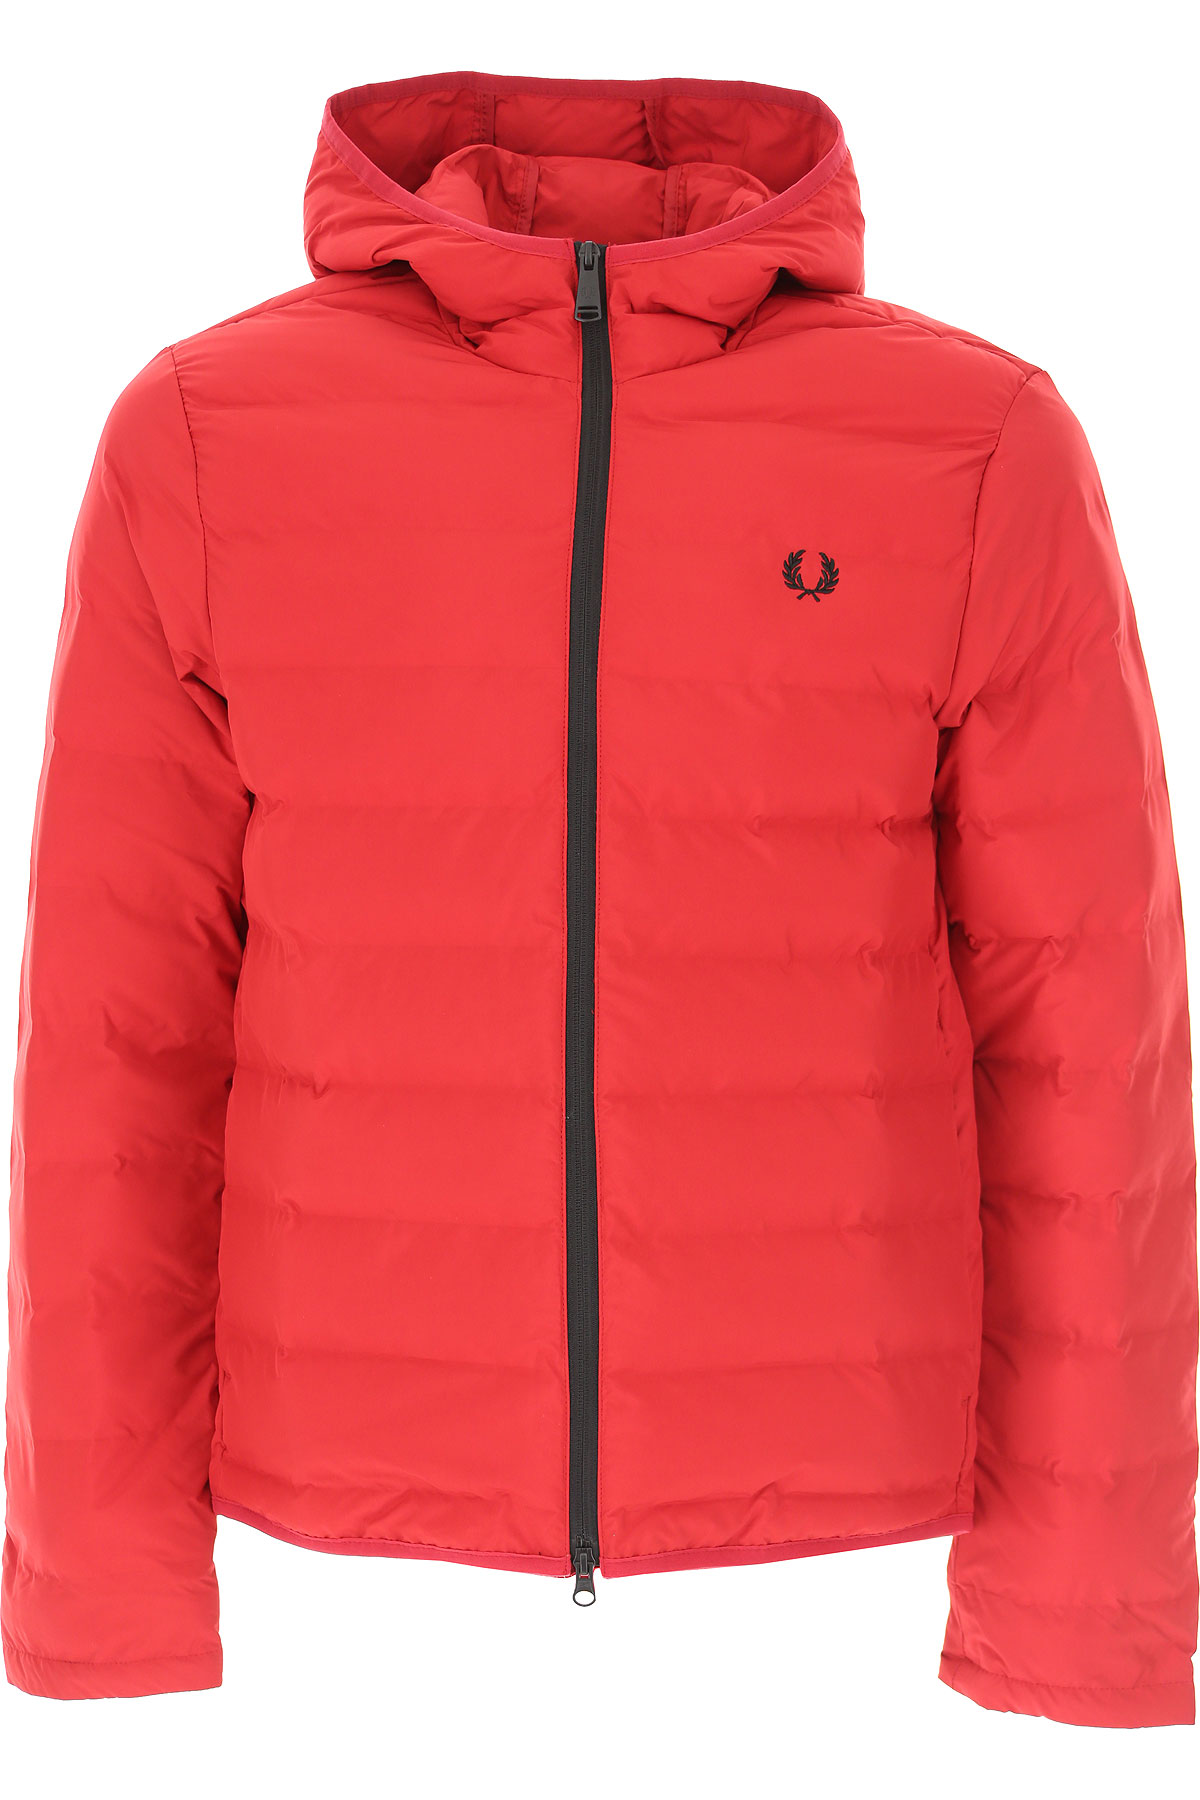 Fred Perry Jacket for Men On Sale, Red, polyester, 2019, L M S